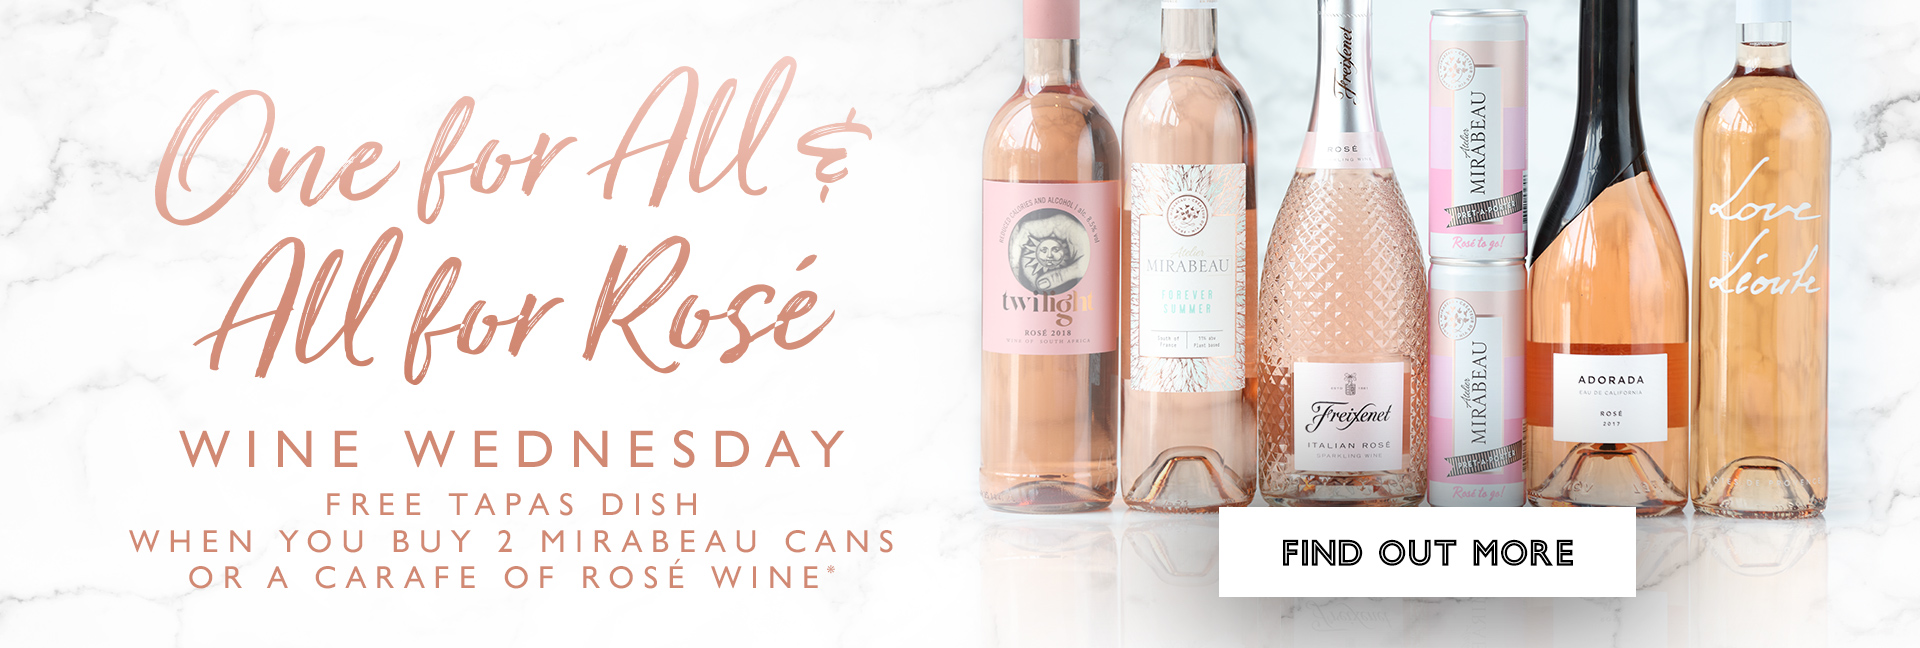 Wine Wednesdays at All Bar One Guildford